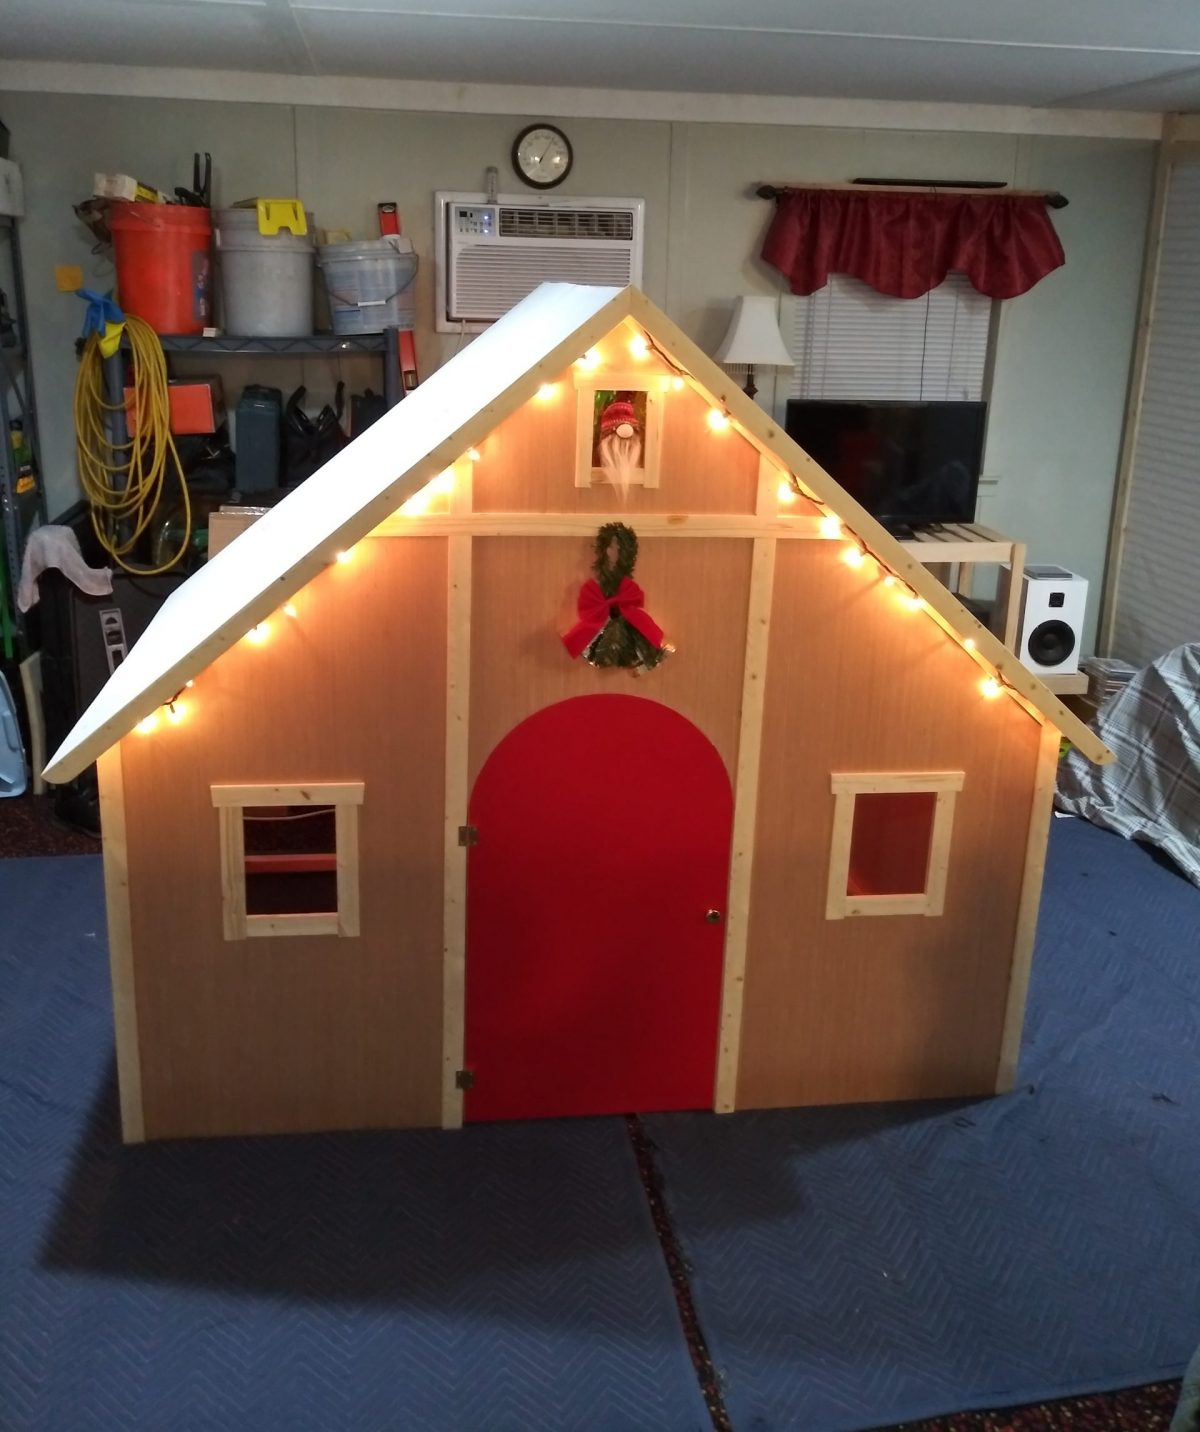 Christmas 2020 playhouse for kids